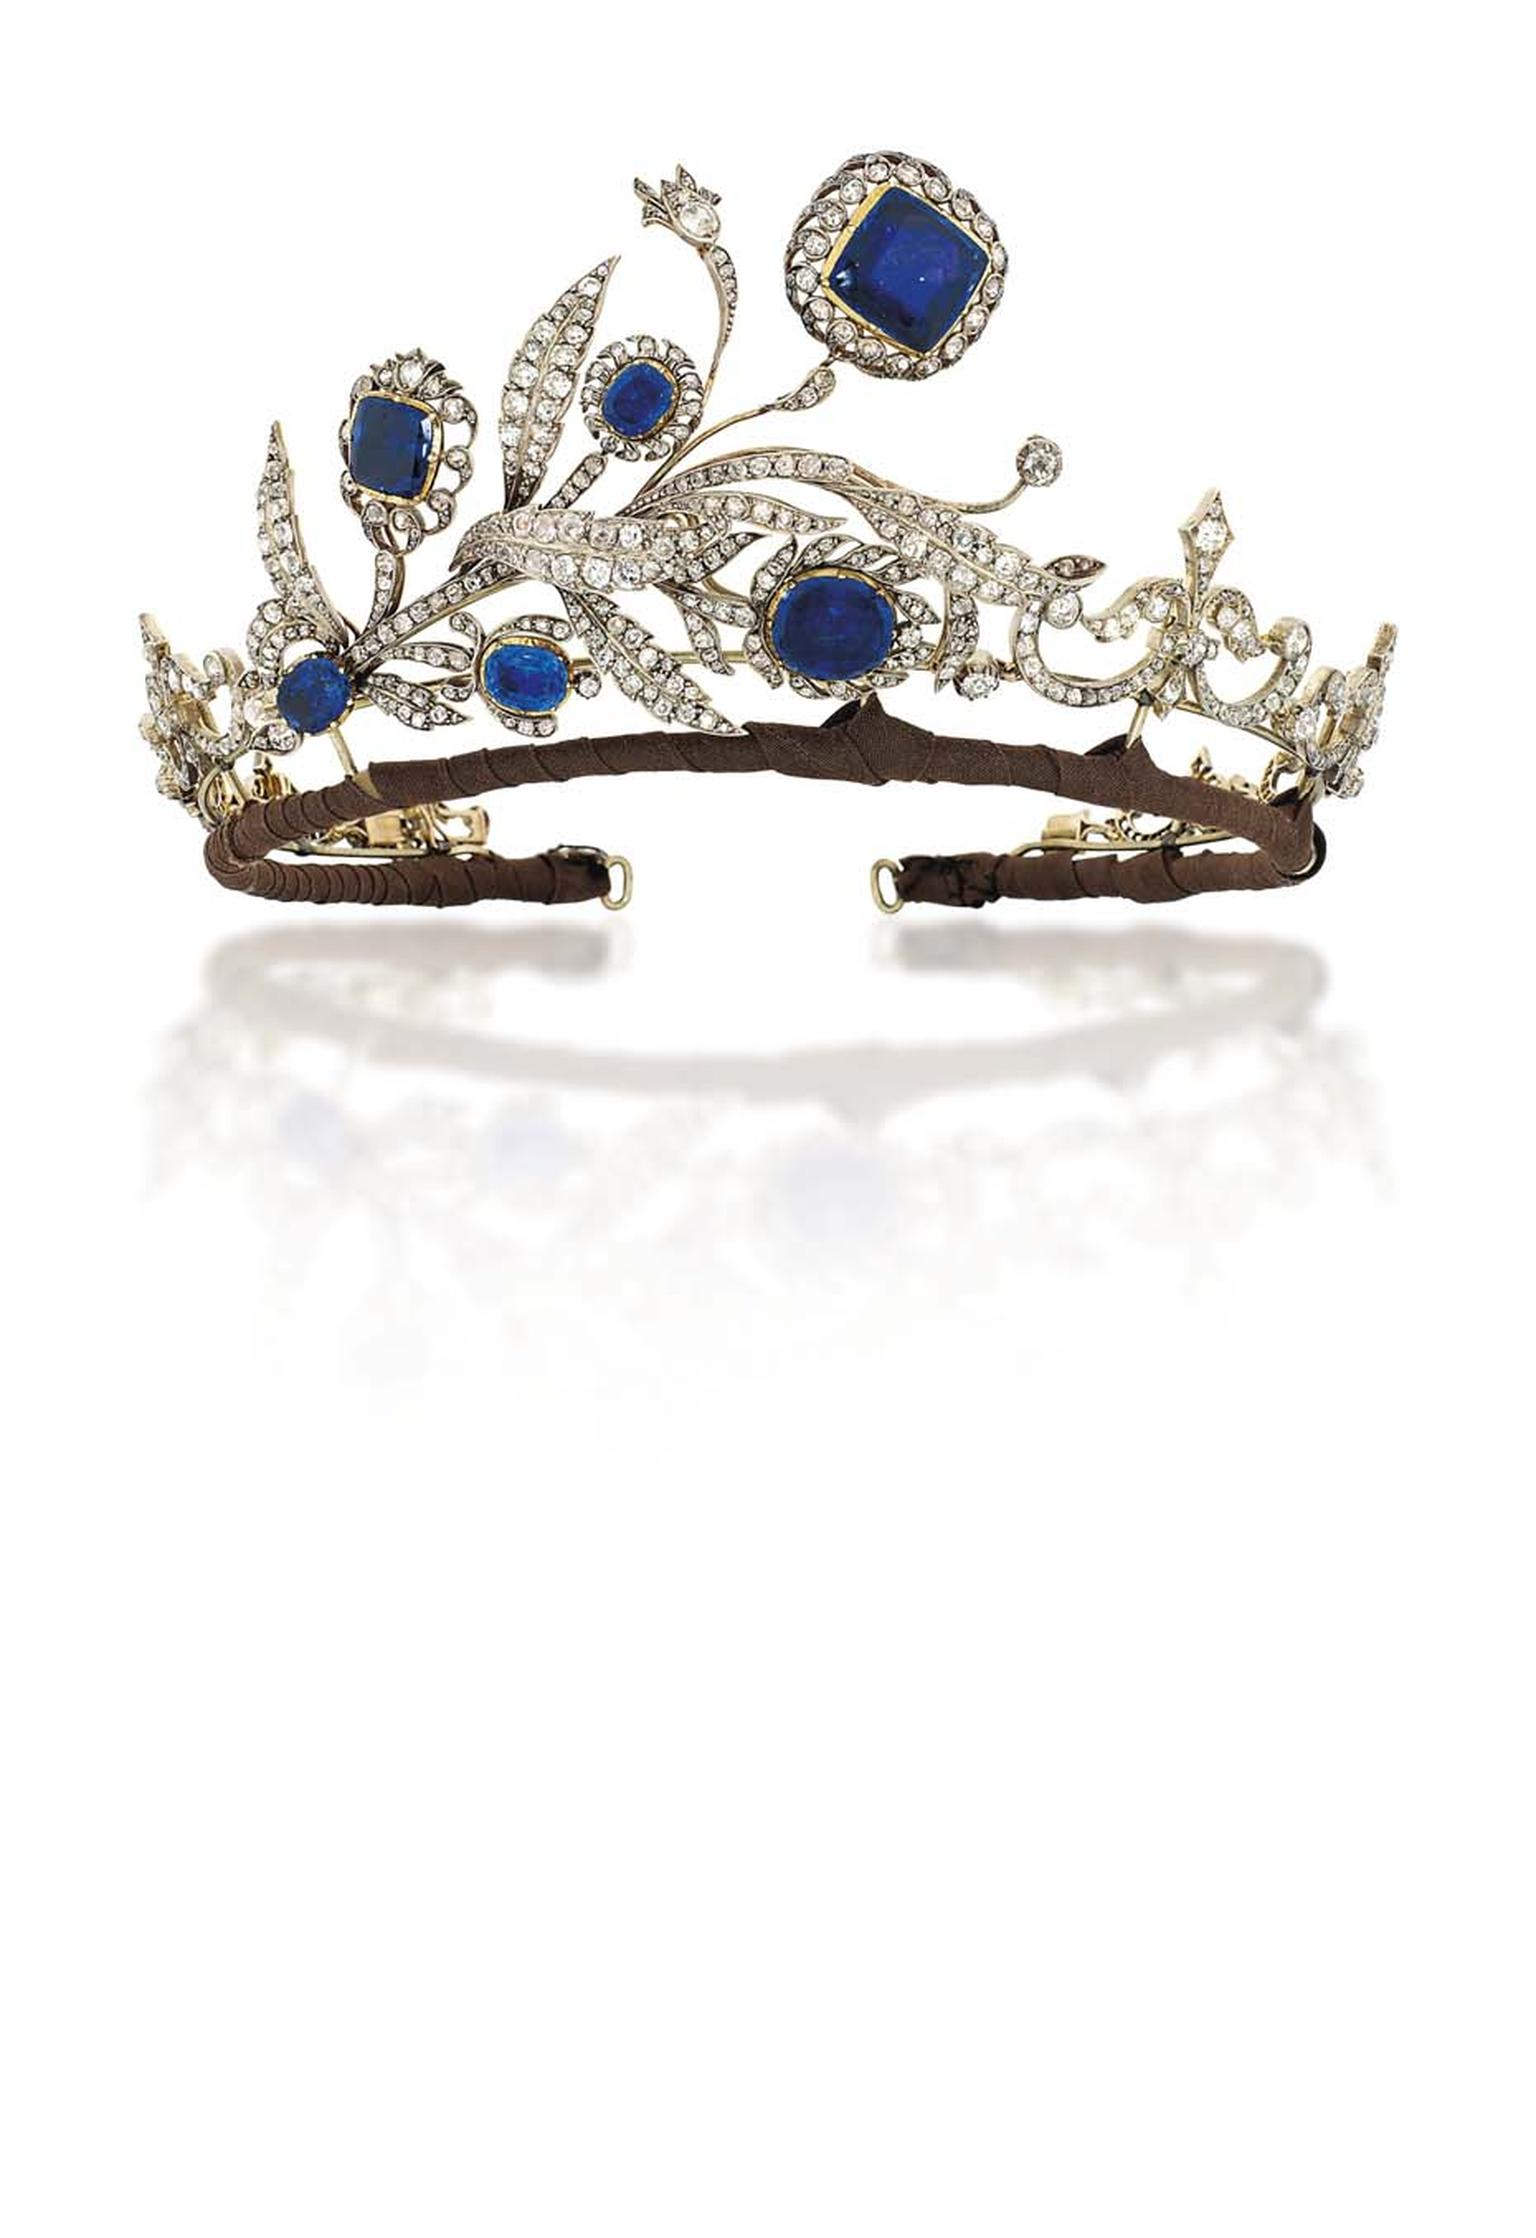 Lot 248, a sapphire and diamond tiara dating from 1890, is regal yet delicate (estimate: £30,000-40,000).